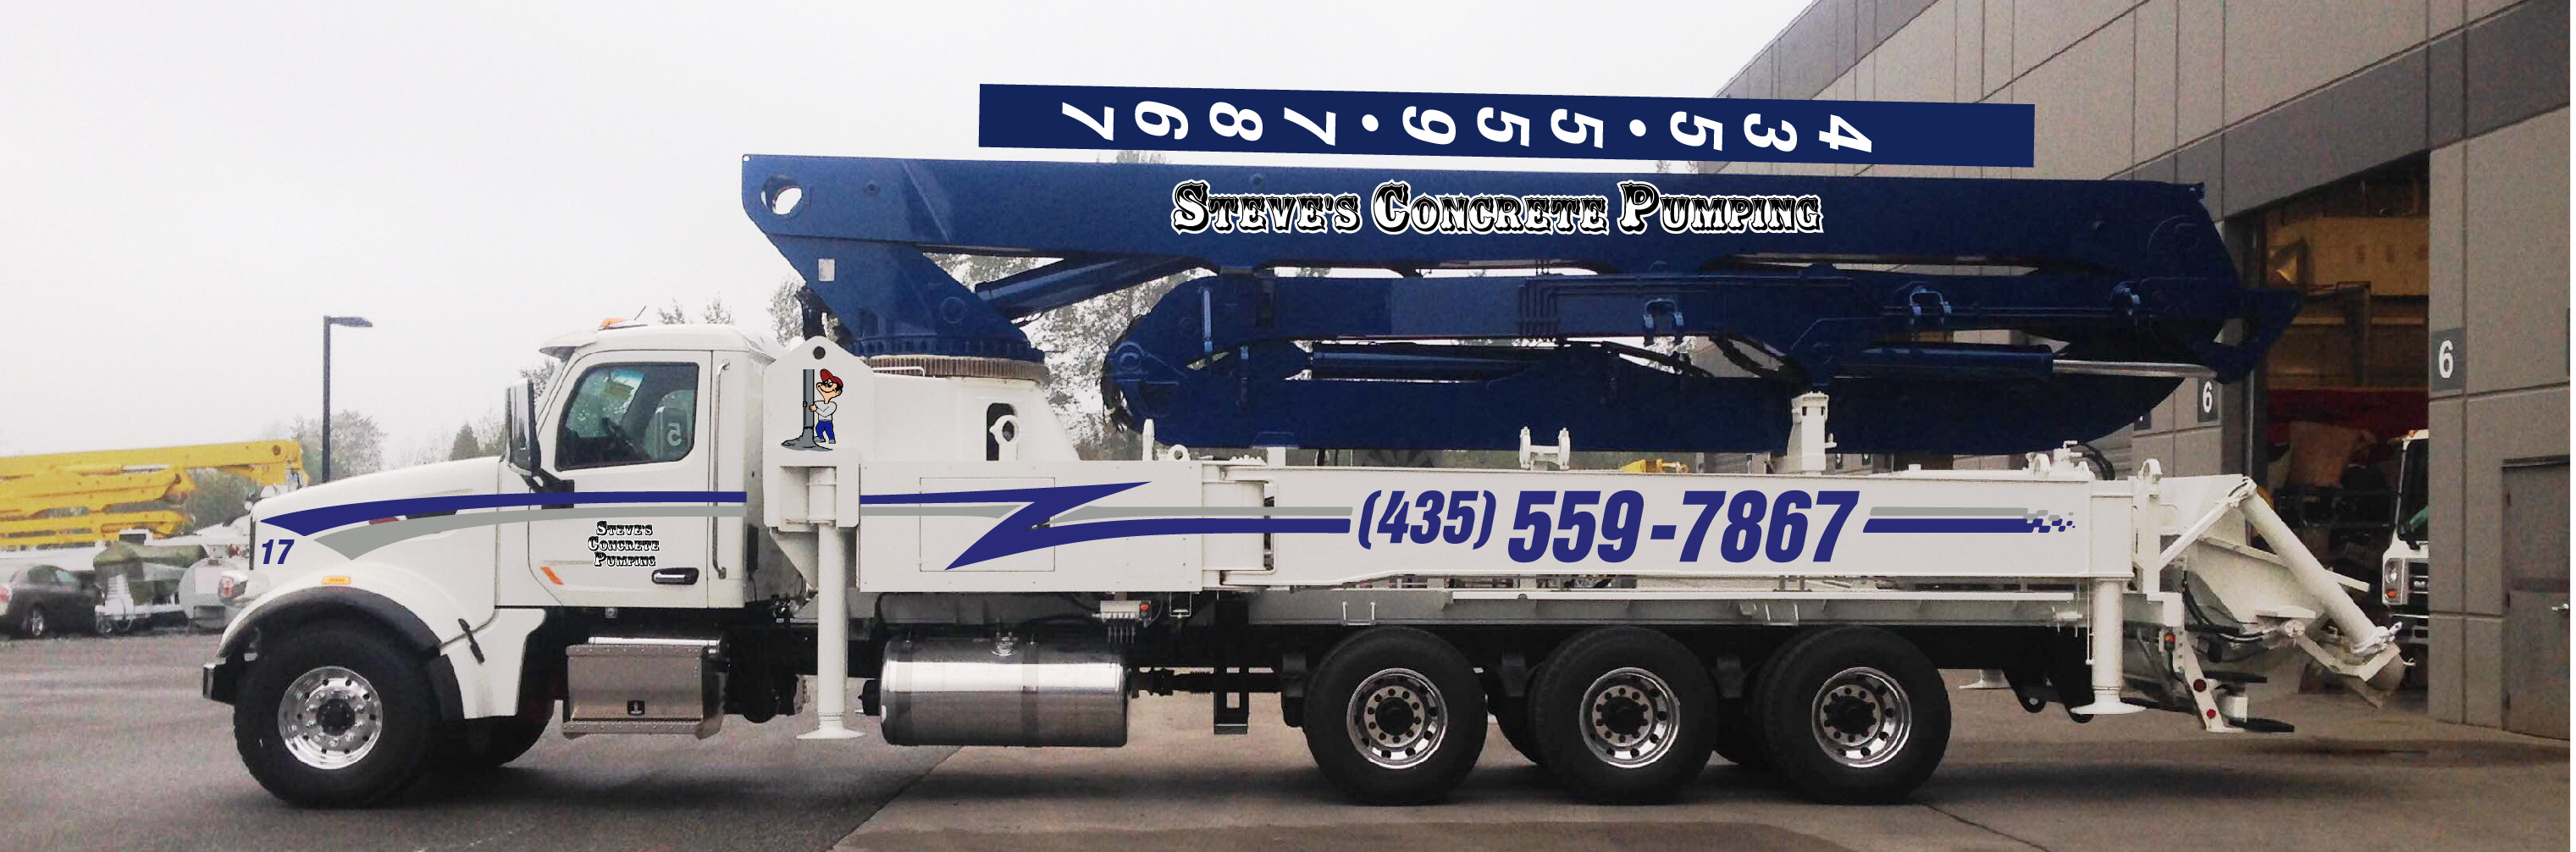 New pumper truck coming out of Alliance factory